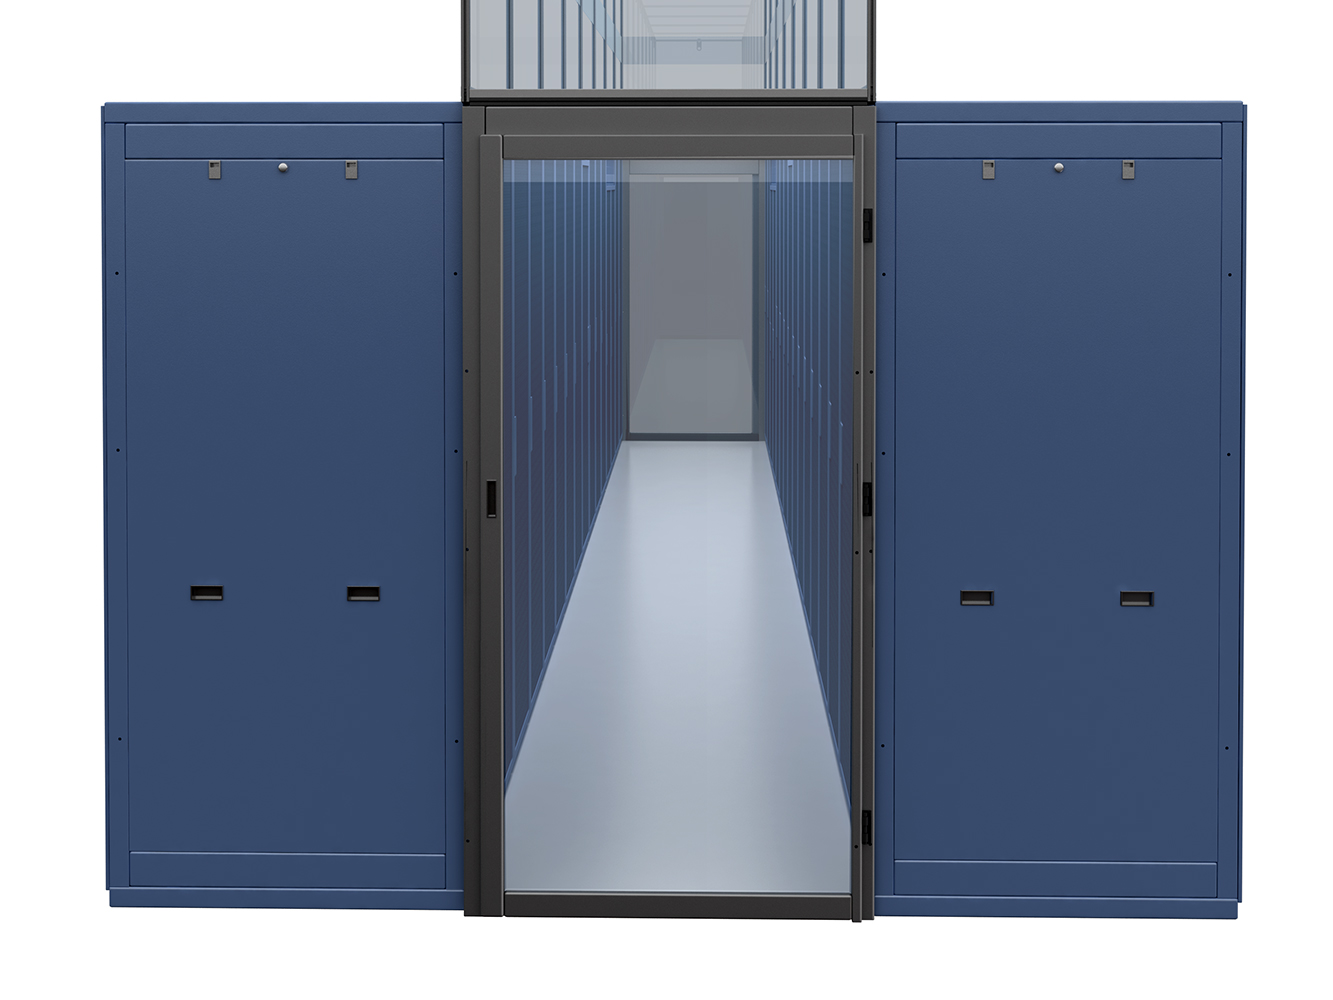 Double sliding containment door data center aisle for Double sliding doors